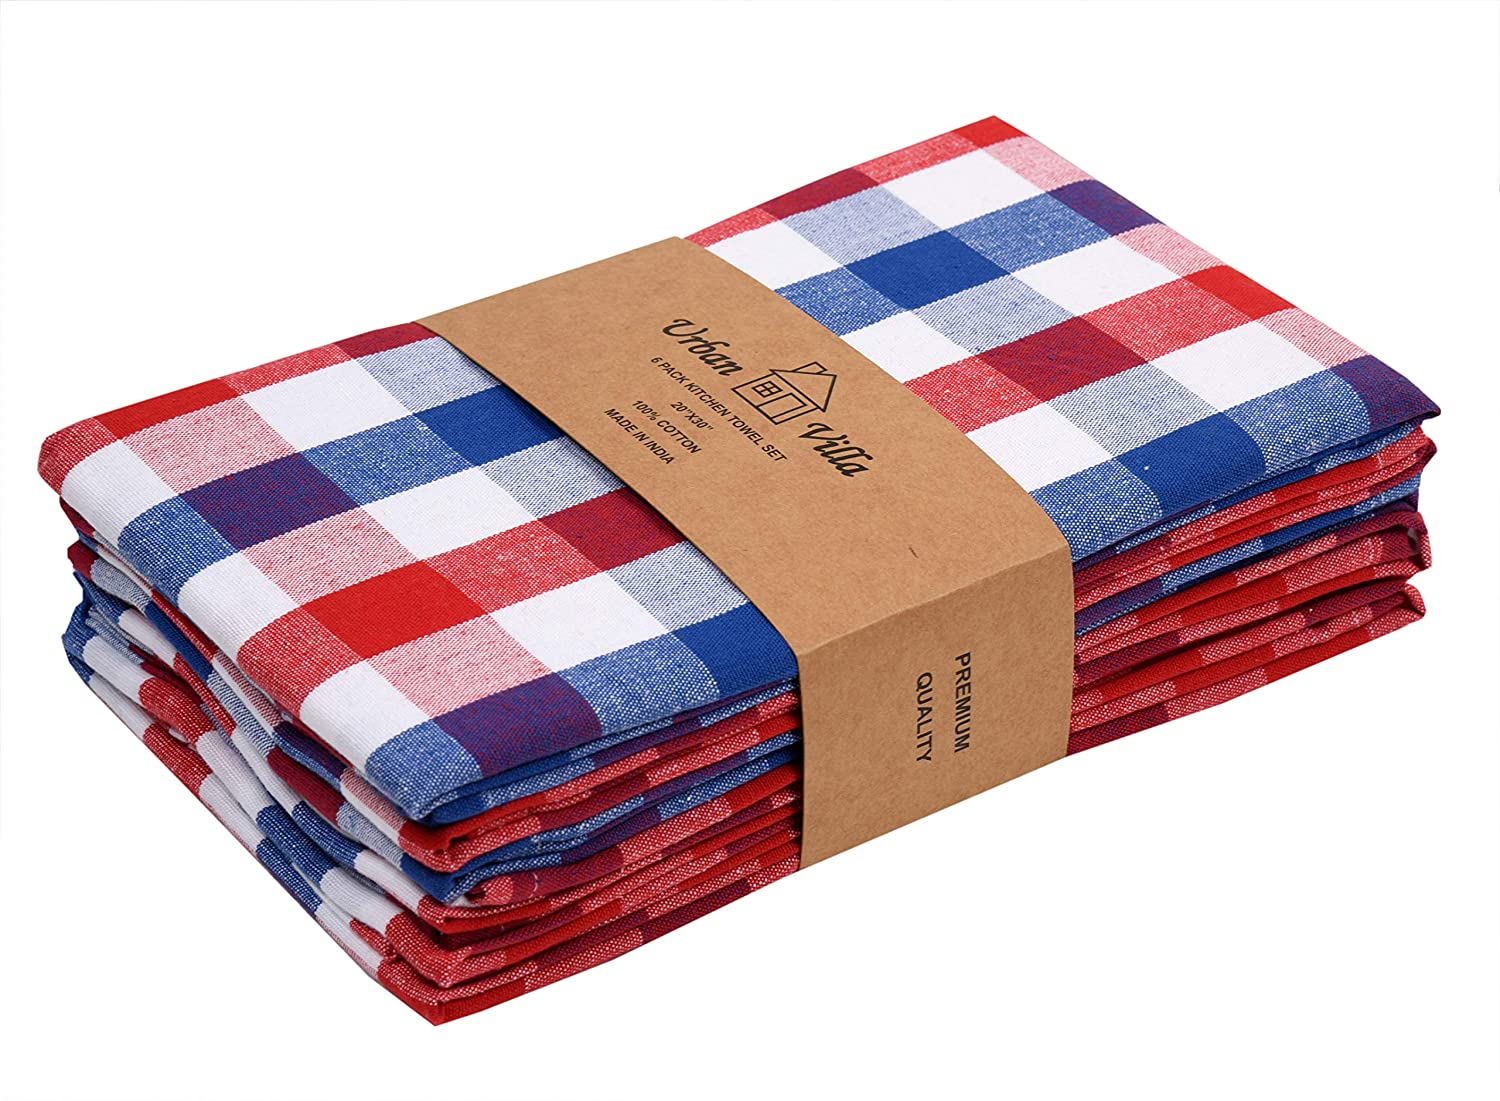 Urban Villa Kitchen Towels, Premium Quality, 100% Cotton Dish Towels, Mitered Corners,Ultra Soft (Size: 20X30 Inch),Red/Blue/White Highly Absorbent Bar Towels & Tea Towels - (Set of 6)